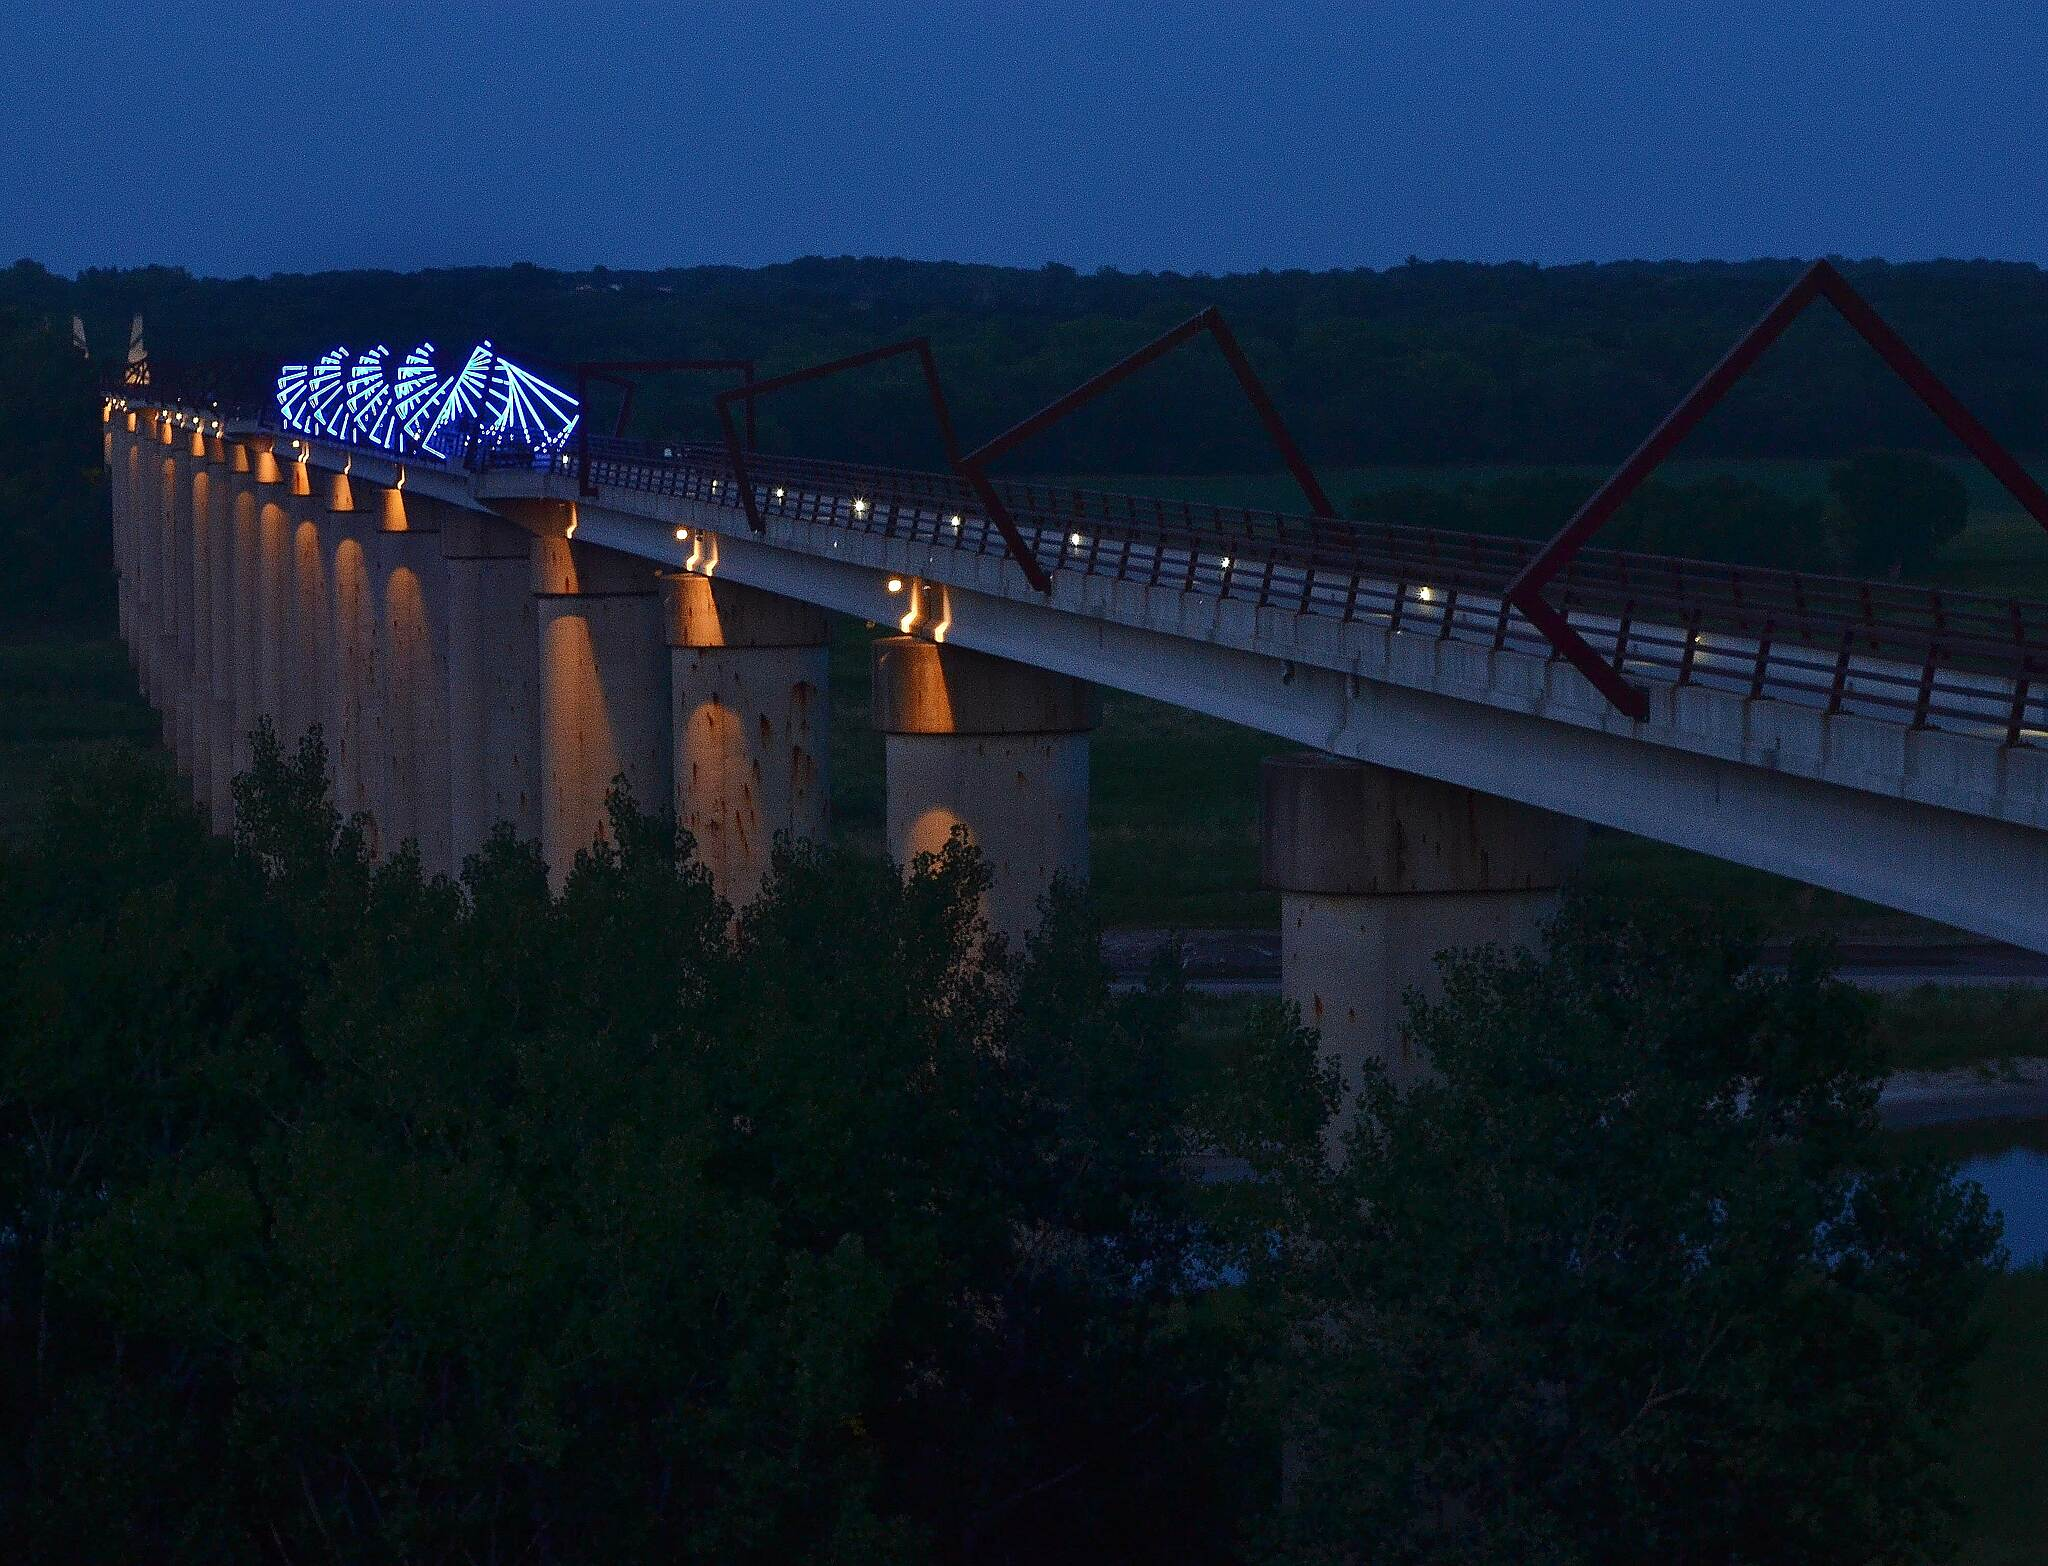 High Trestle Trail High Trestle at Night Time exposure, early evening.  The bridge center has special illumination.